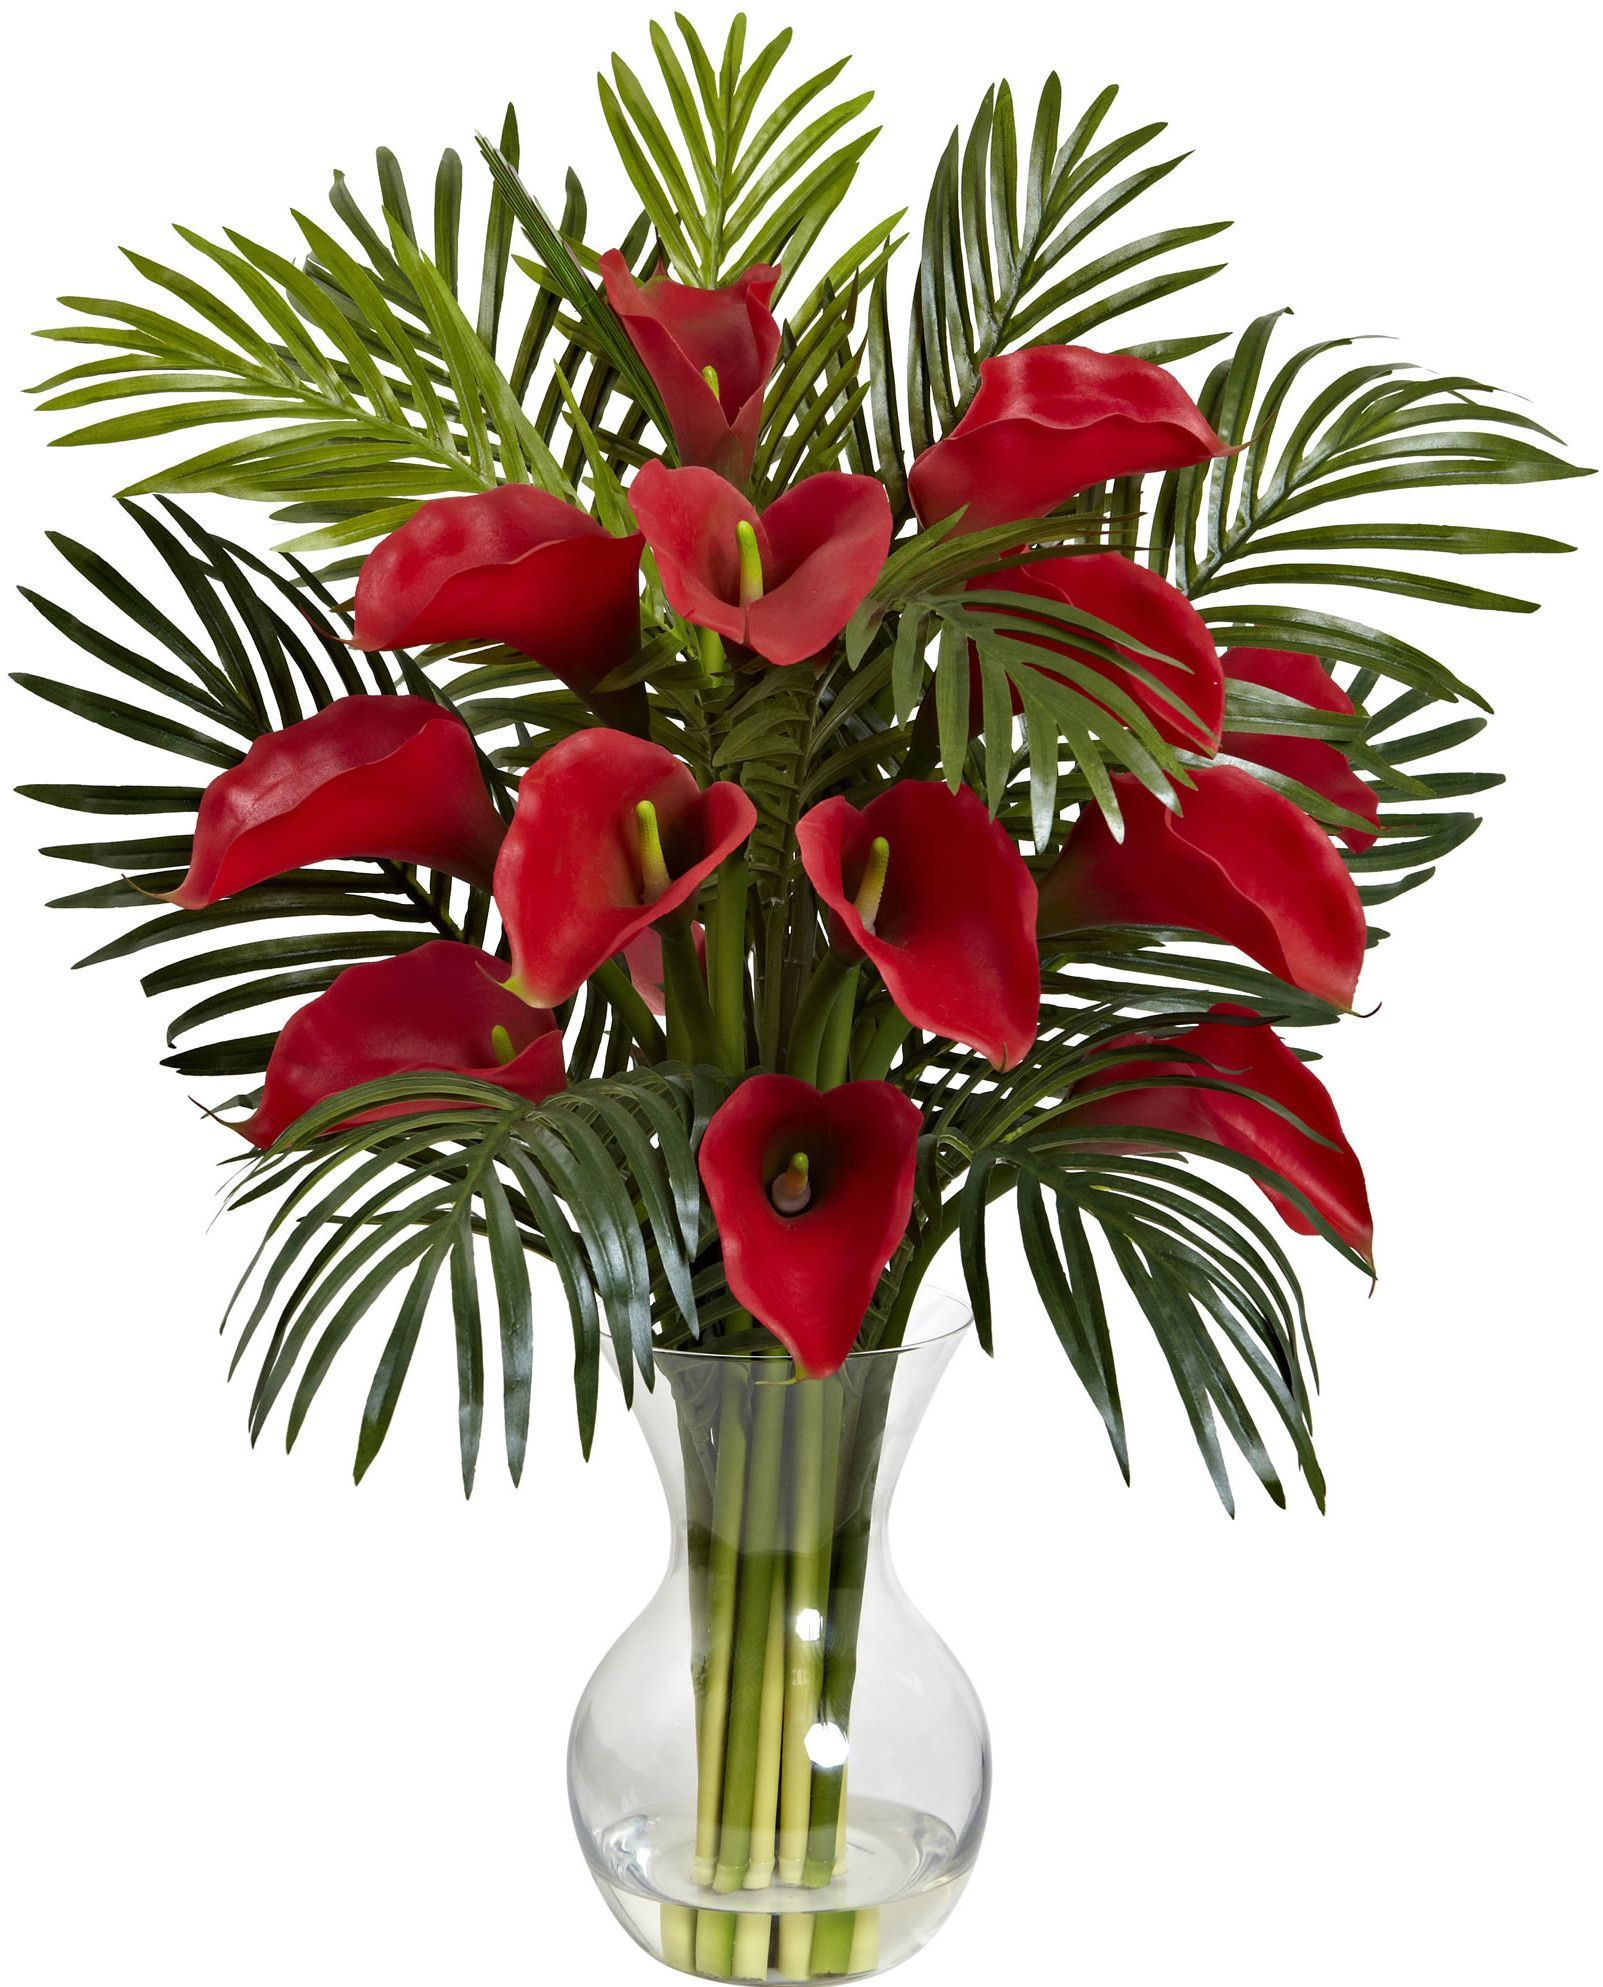 Calla lily and areca palm silk flower arrangement with vase calla lily and areca palm silk flower arrangement with vase dhlflorist Images